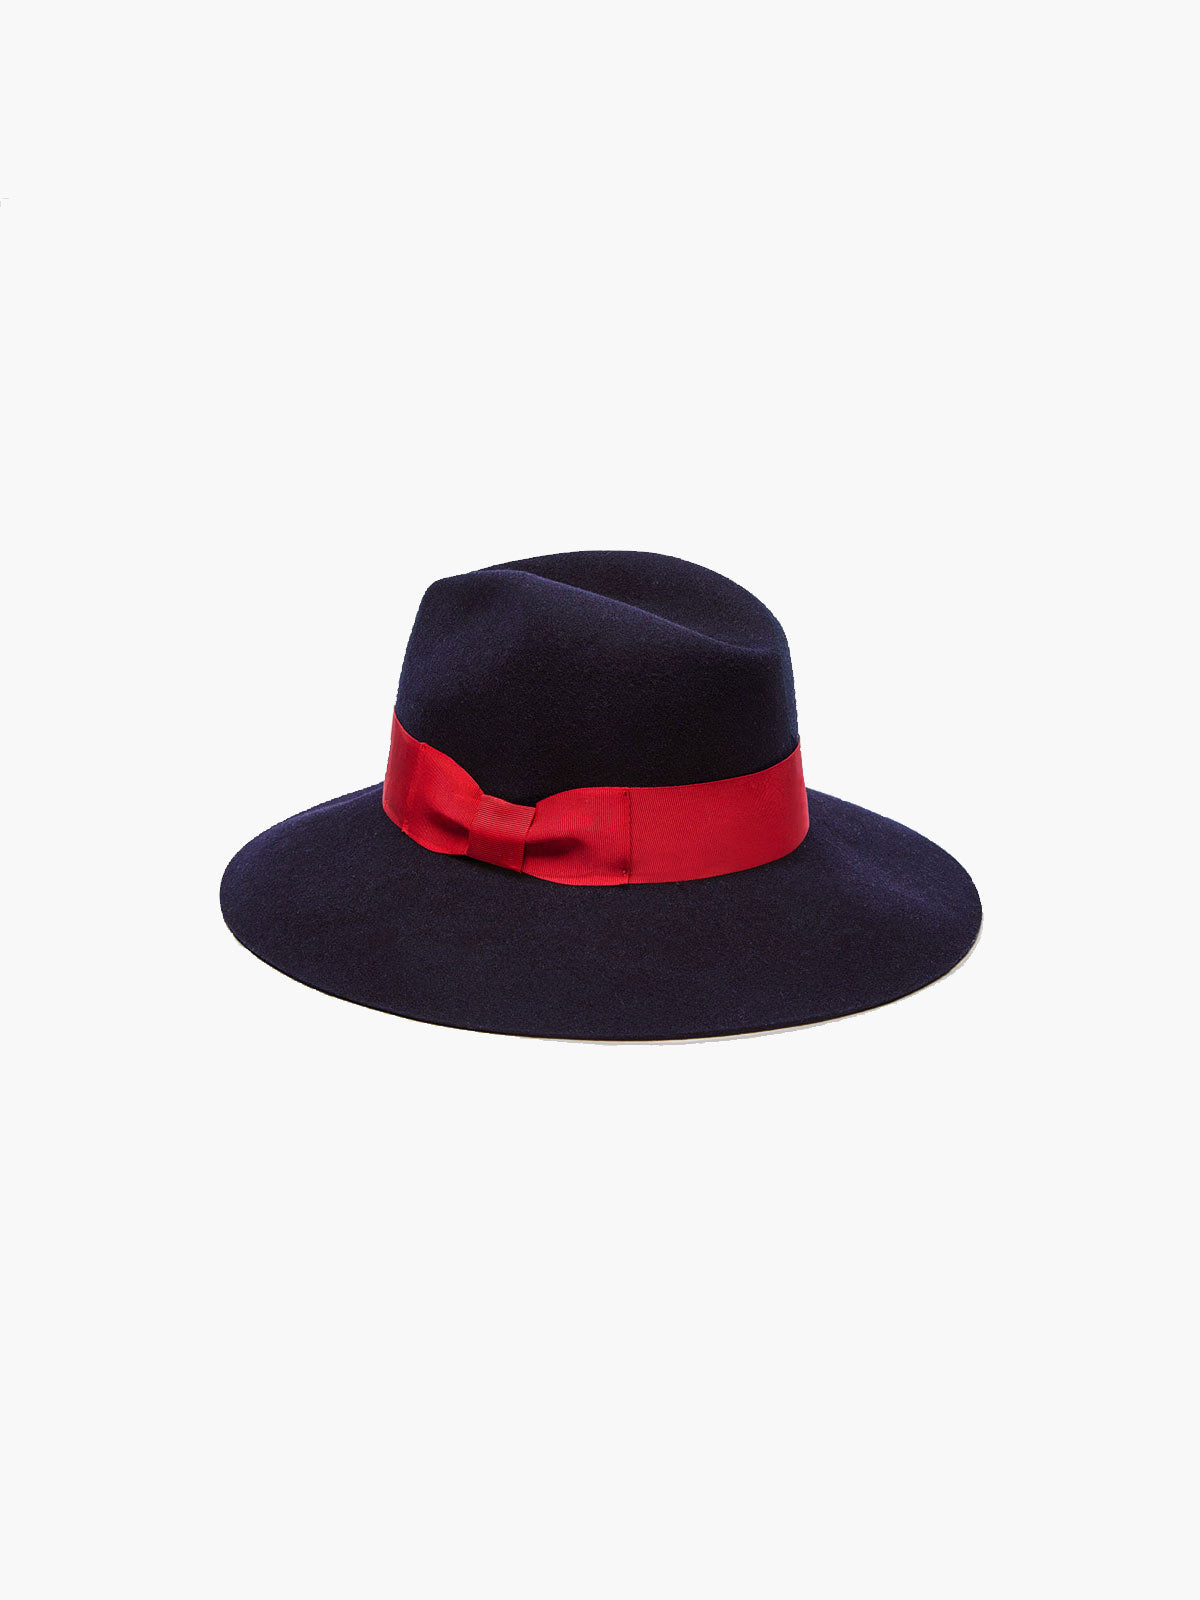 Felt Shade Hat | Navy Felt Shade Hat | Navy